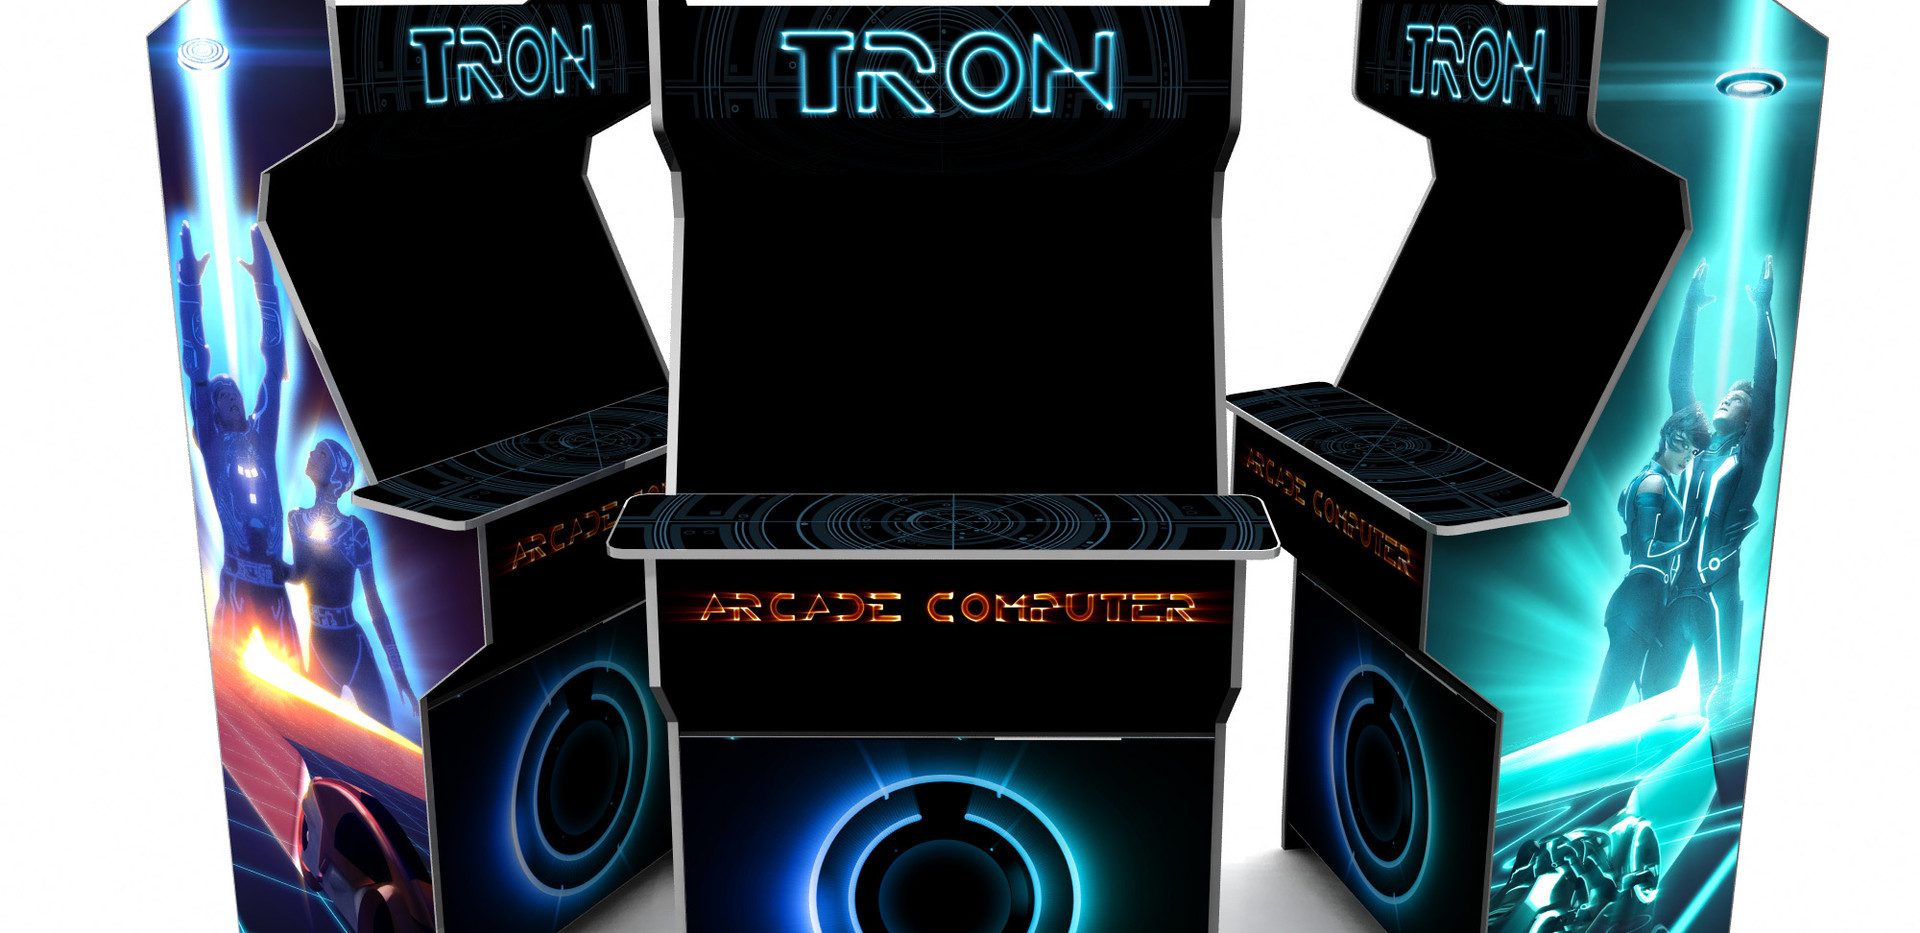 Tron Arcade machine